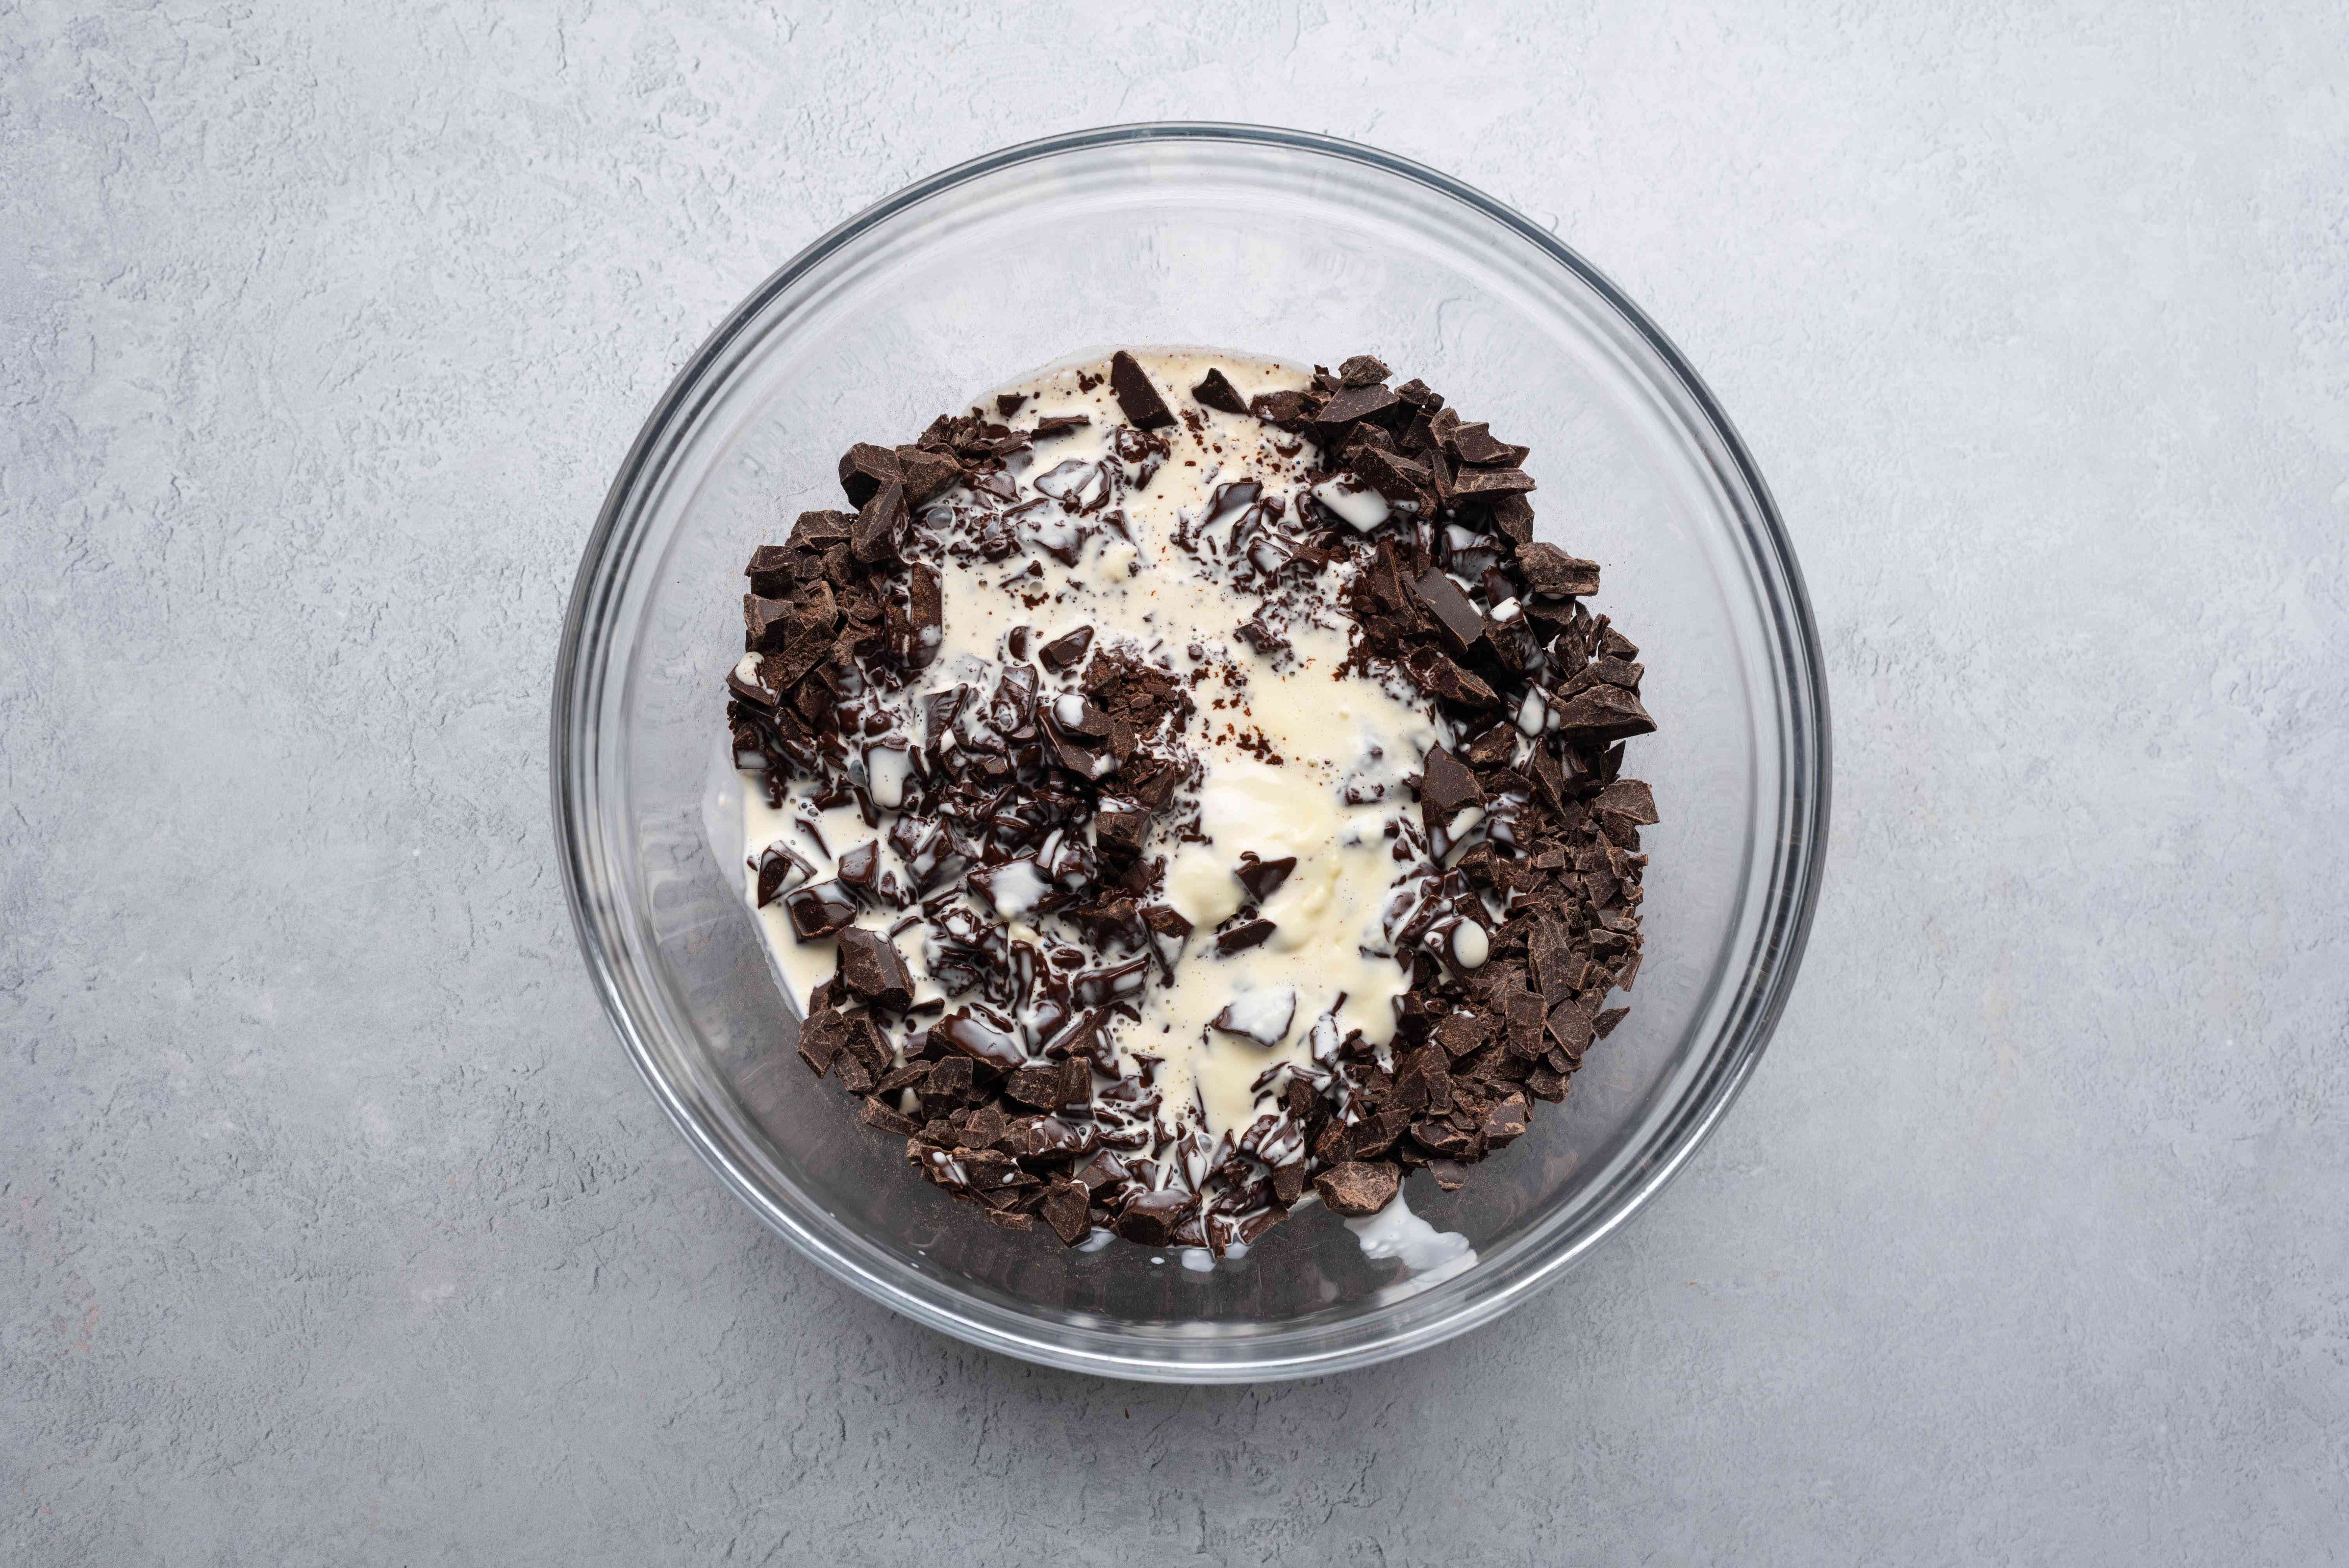 cream and chocolate in a bowl